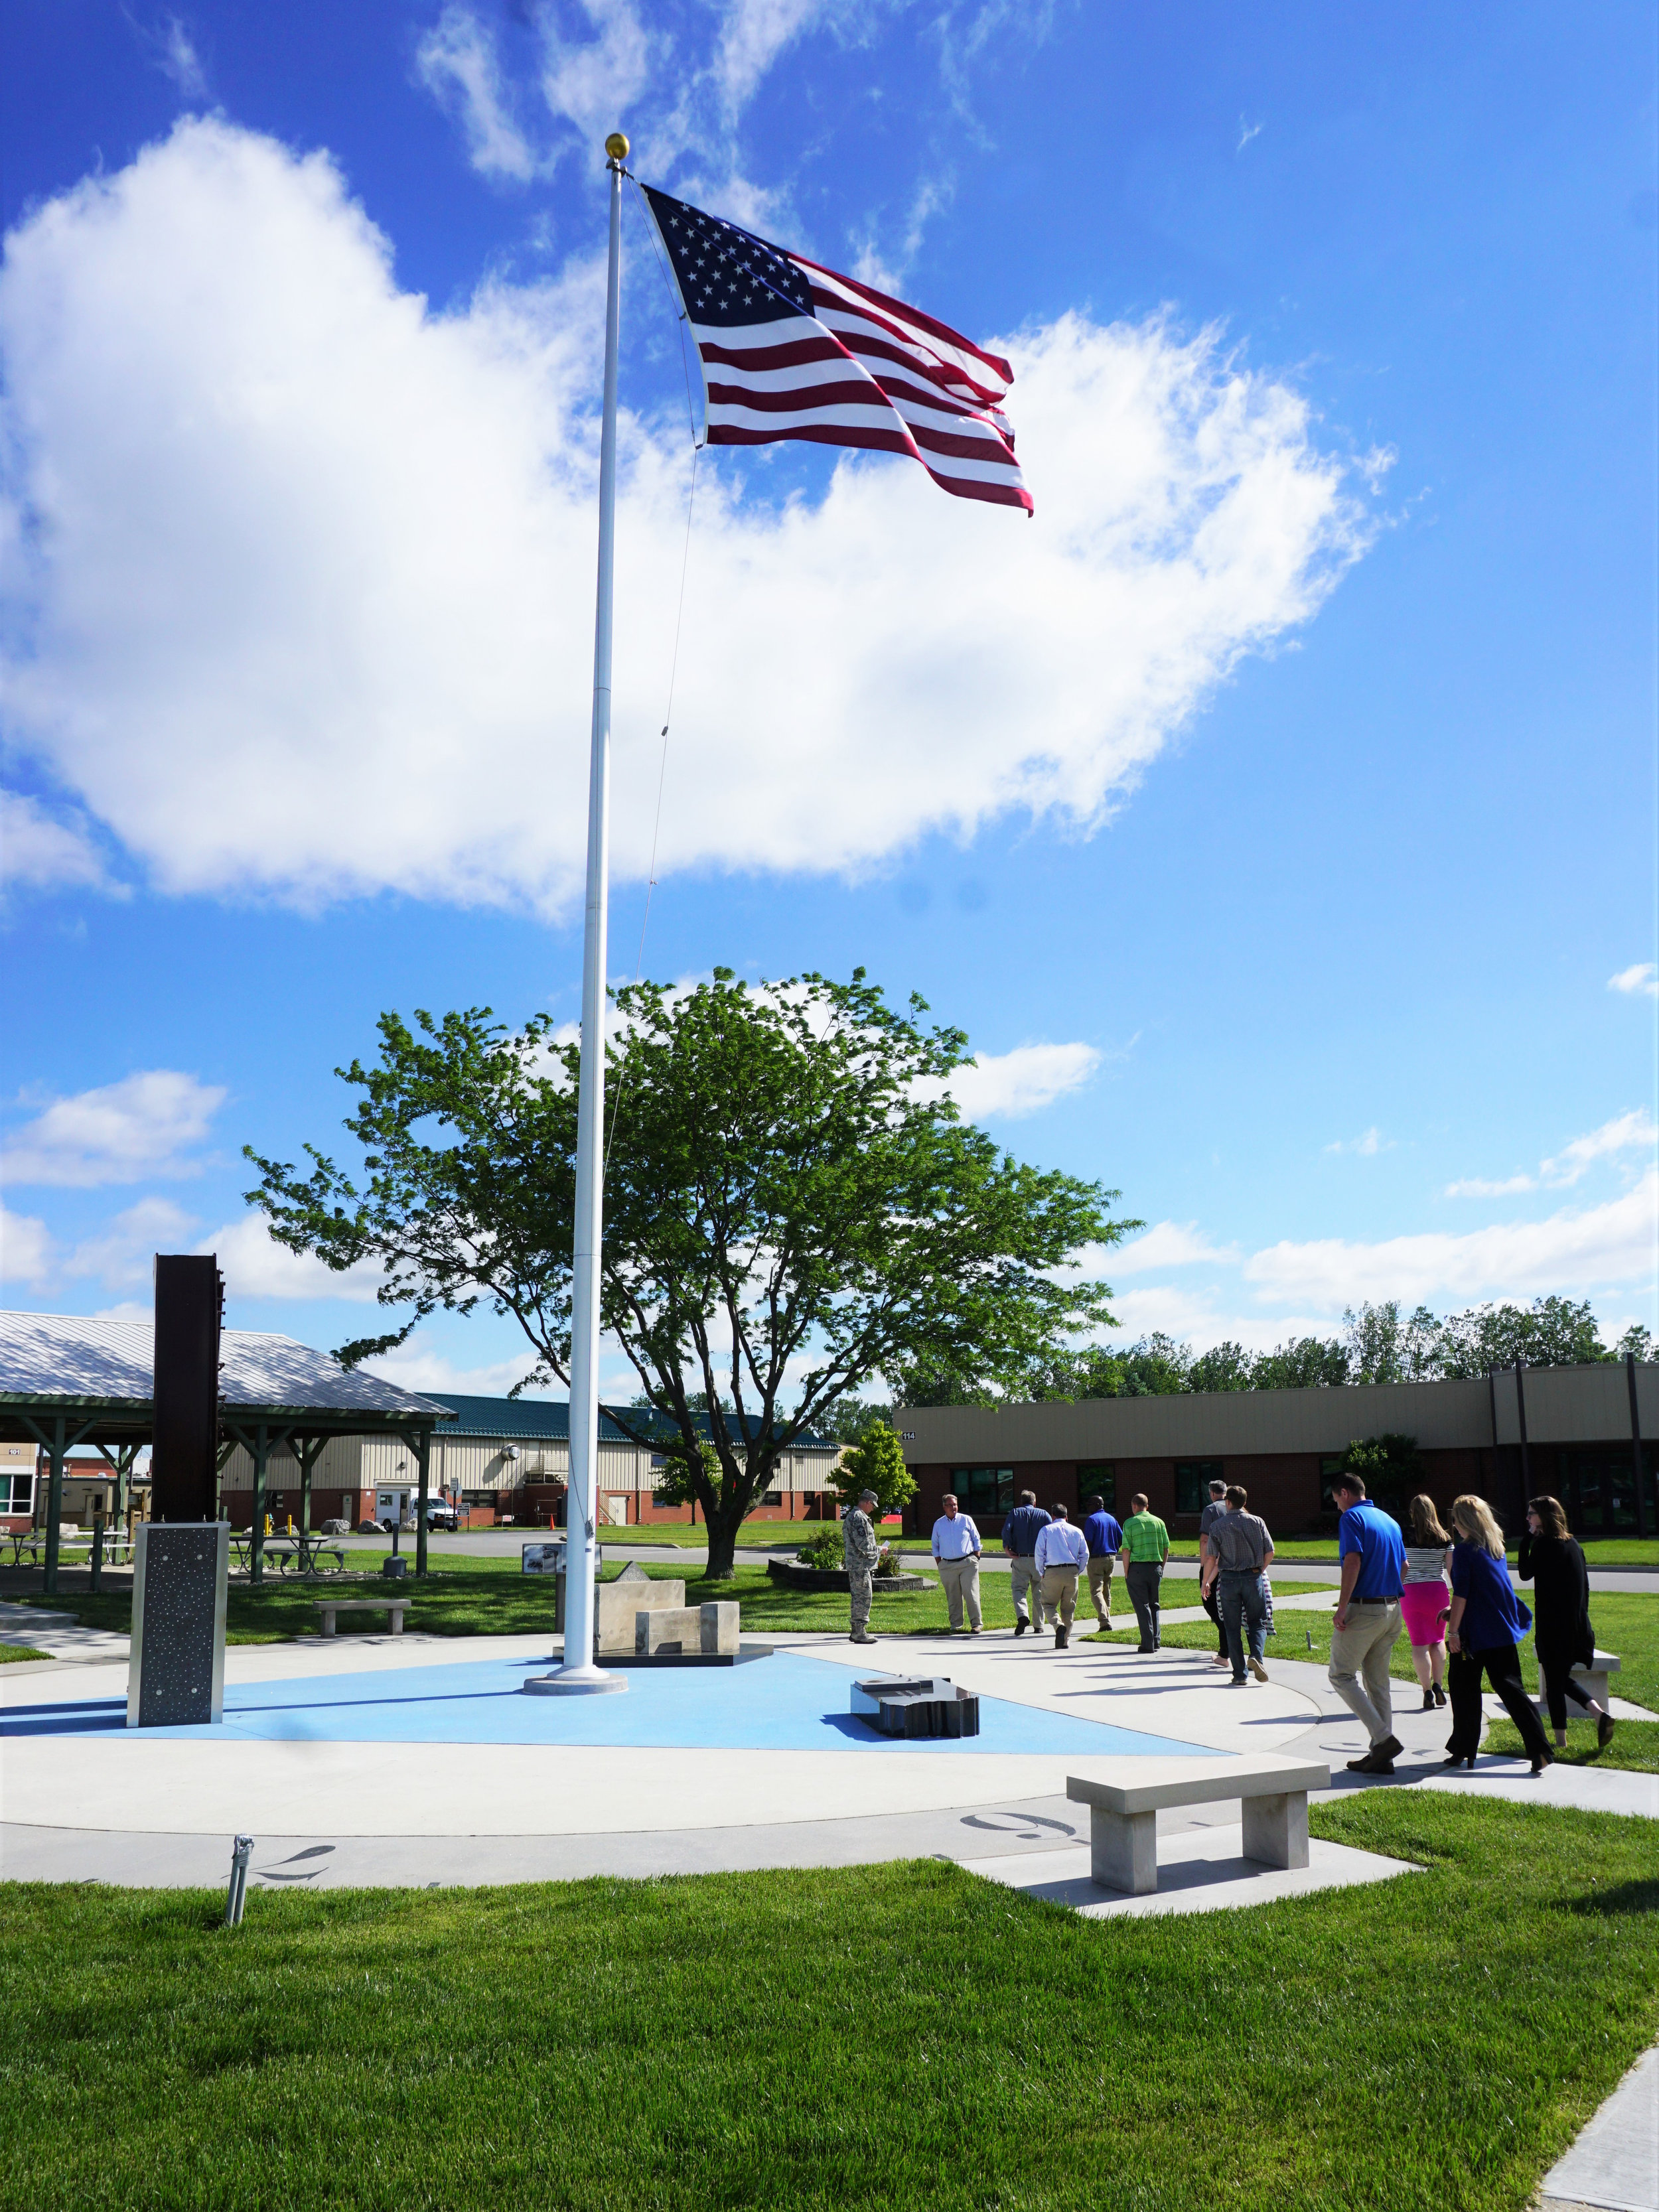 180th Fighter Wing 9/11 Memorial